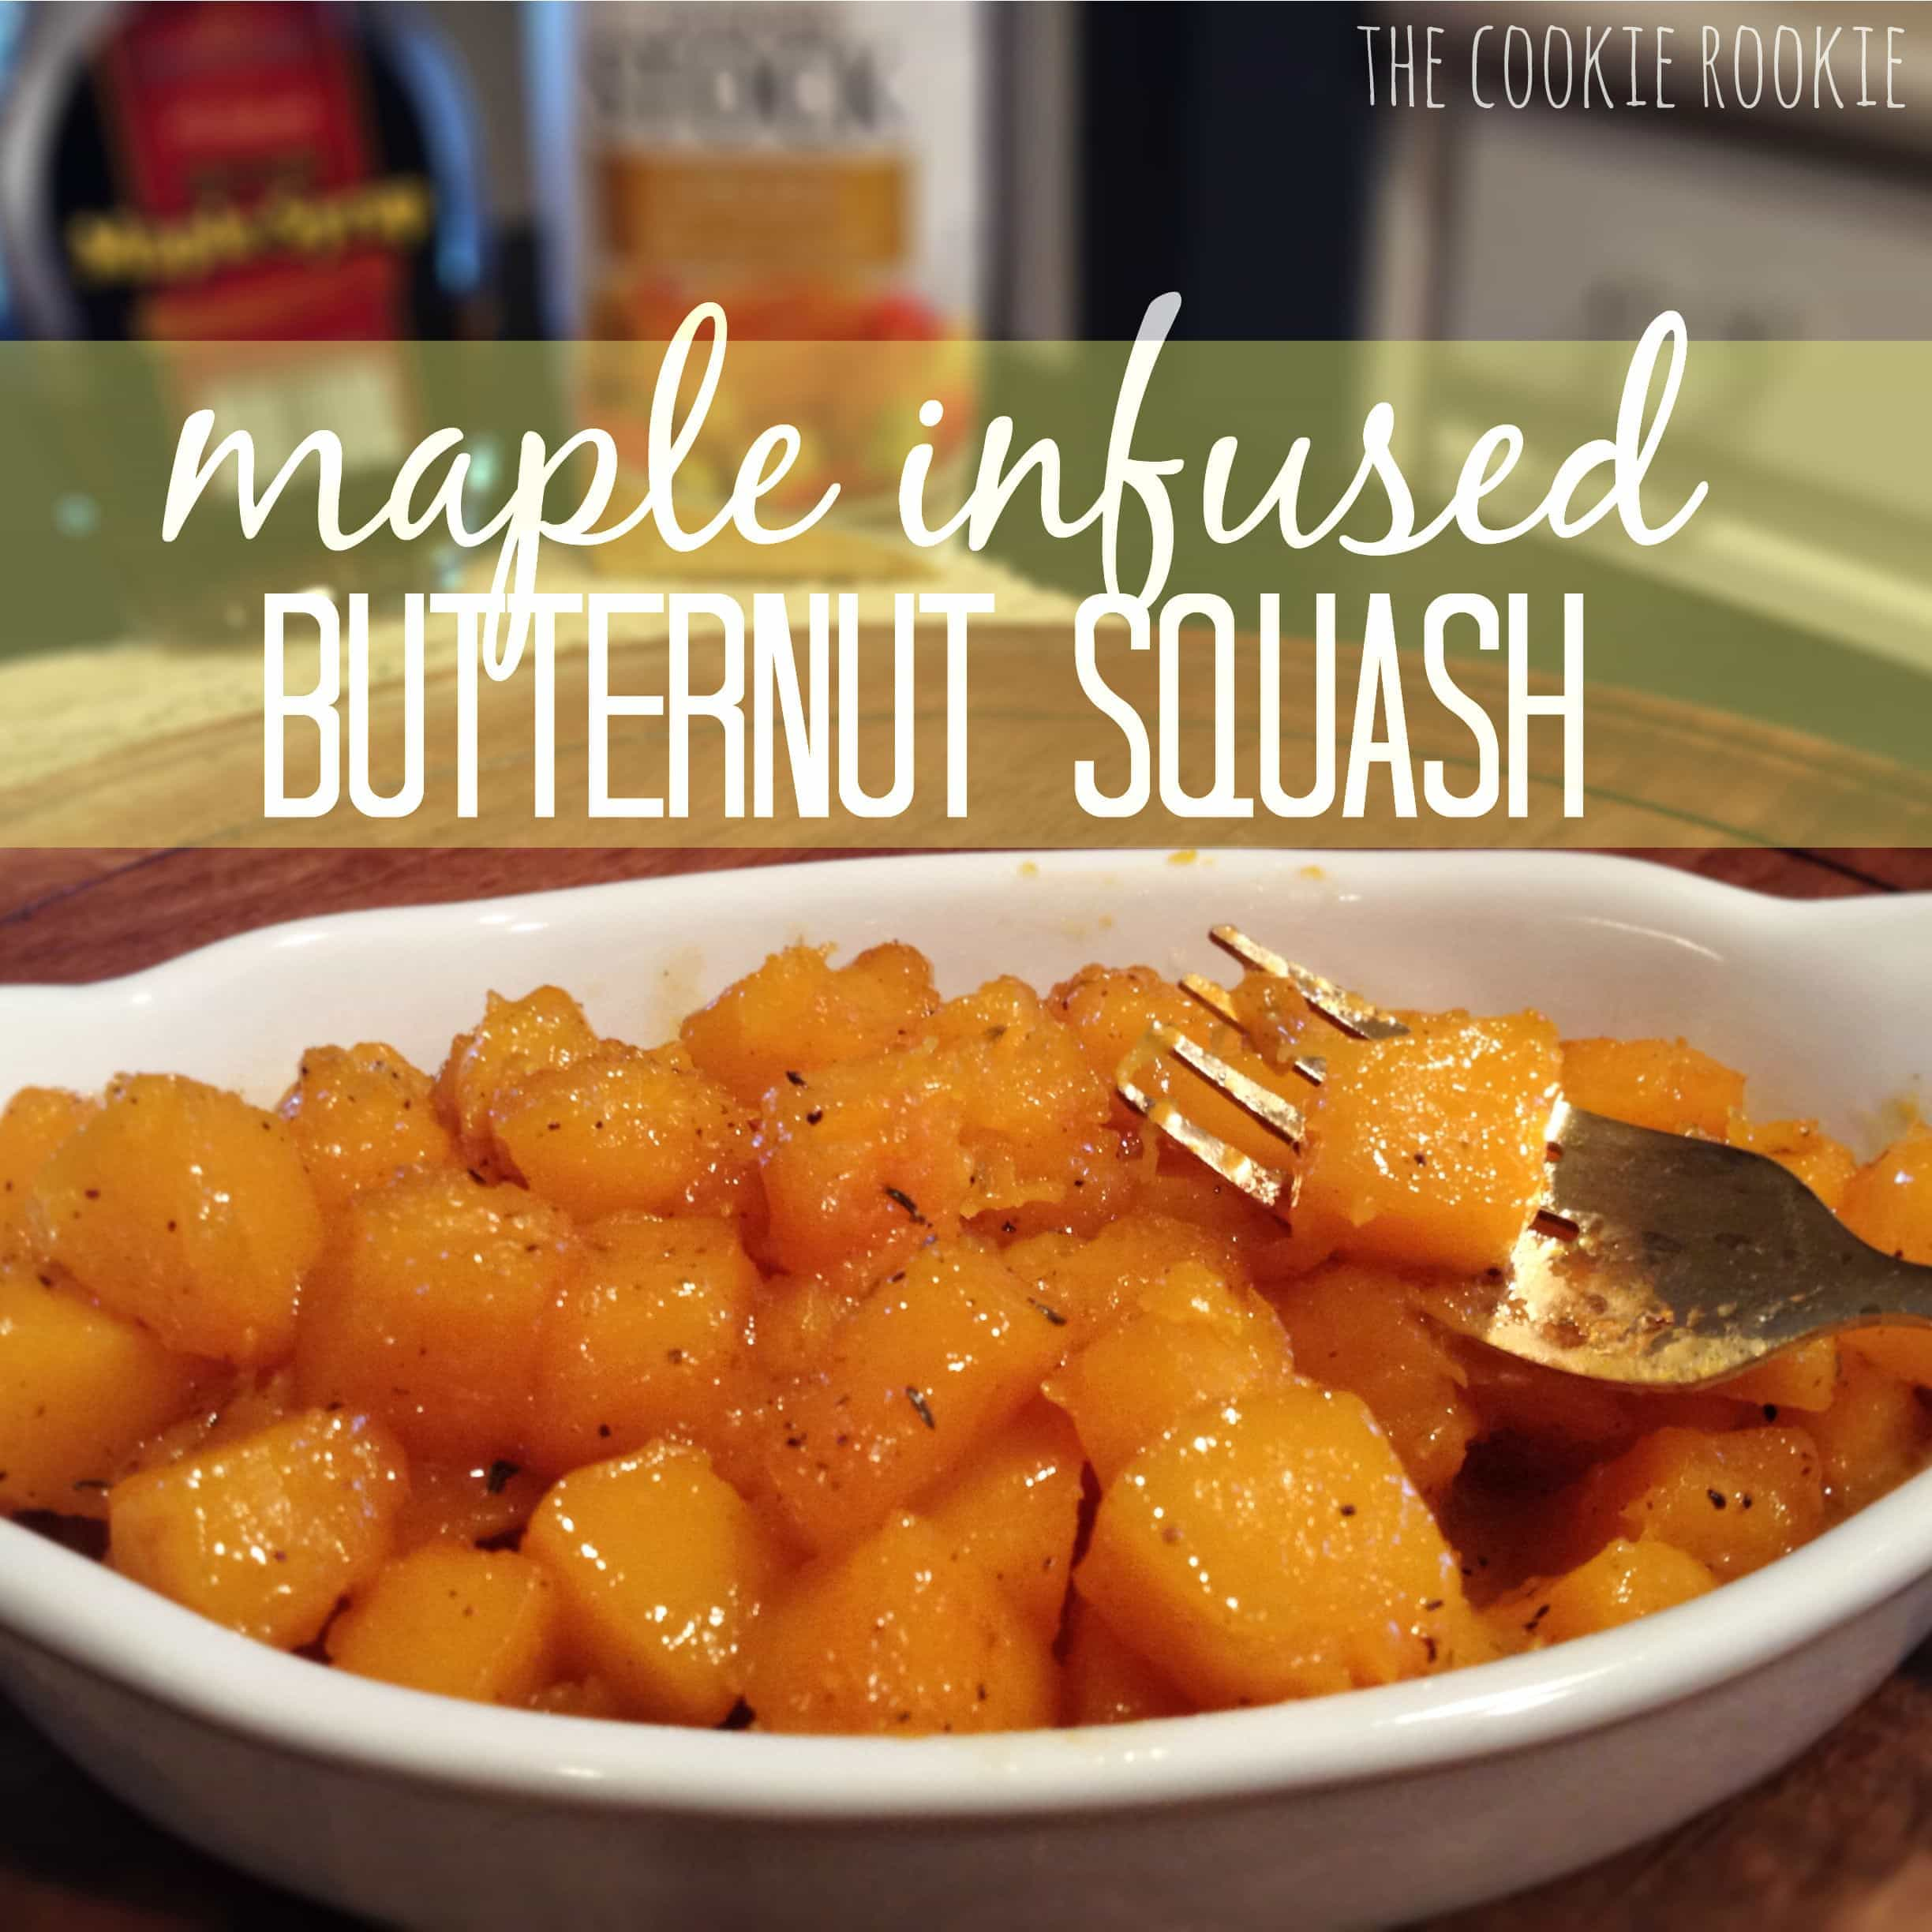 The Cookie Rookie: Maple Infused Butternut Squash